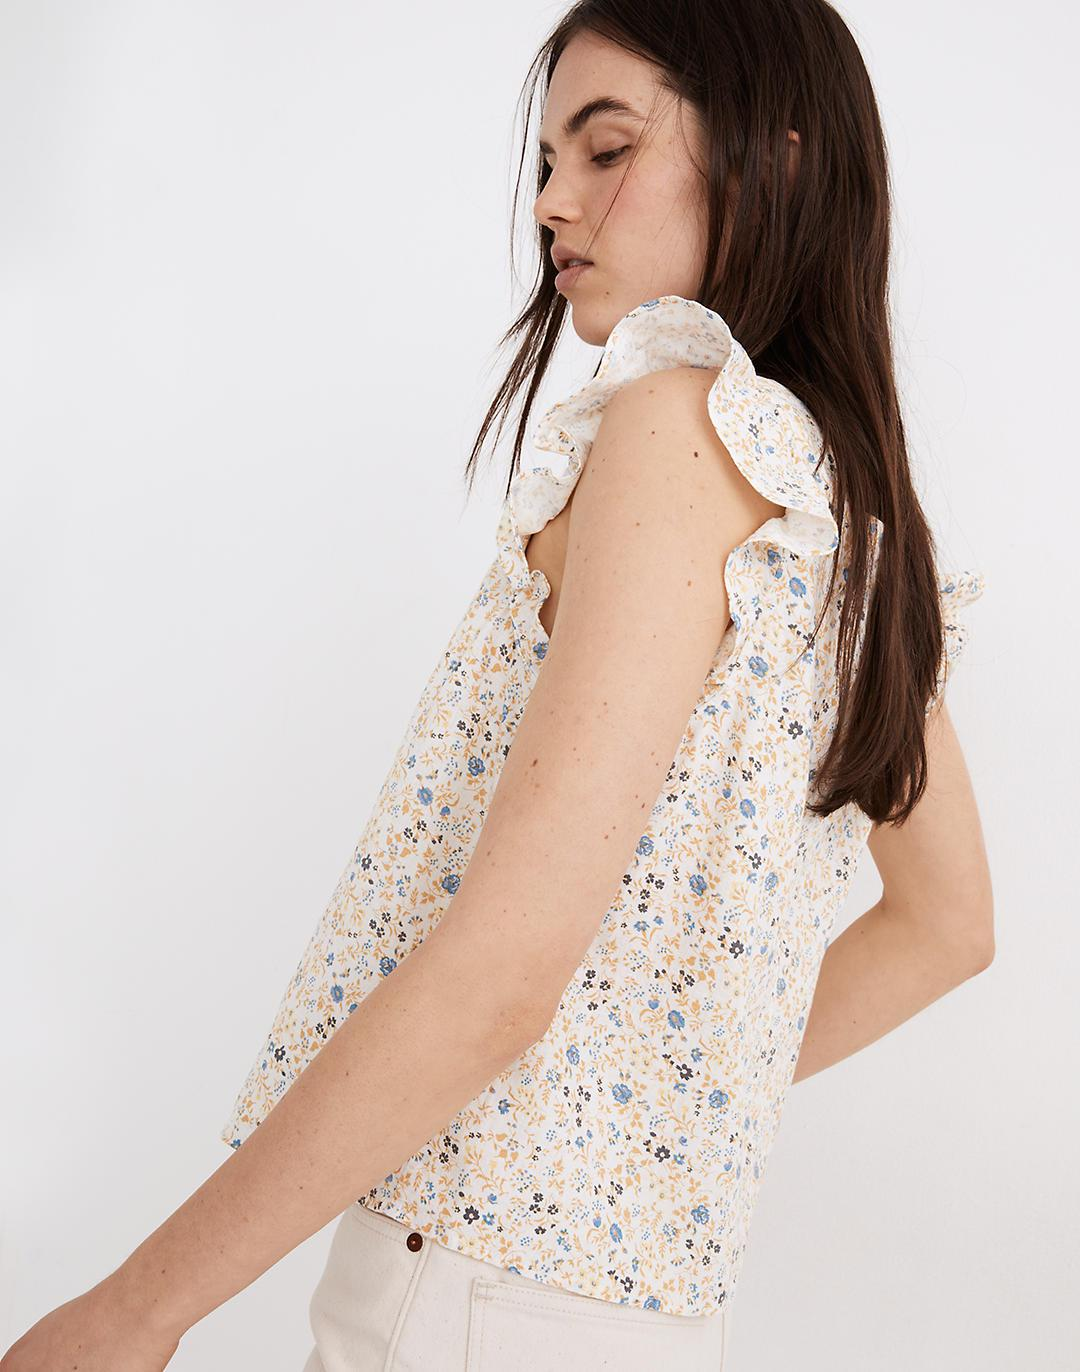 Linen-Blend Ruffle-Strap Button-Up Tank Top in Folkmagic Floral 1